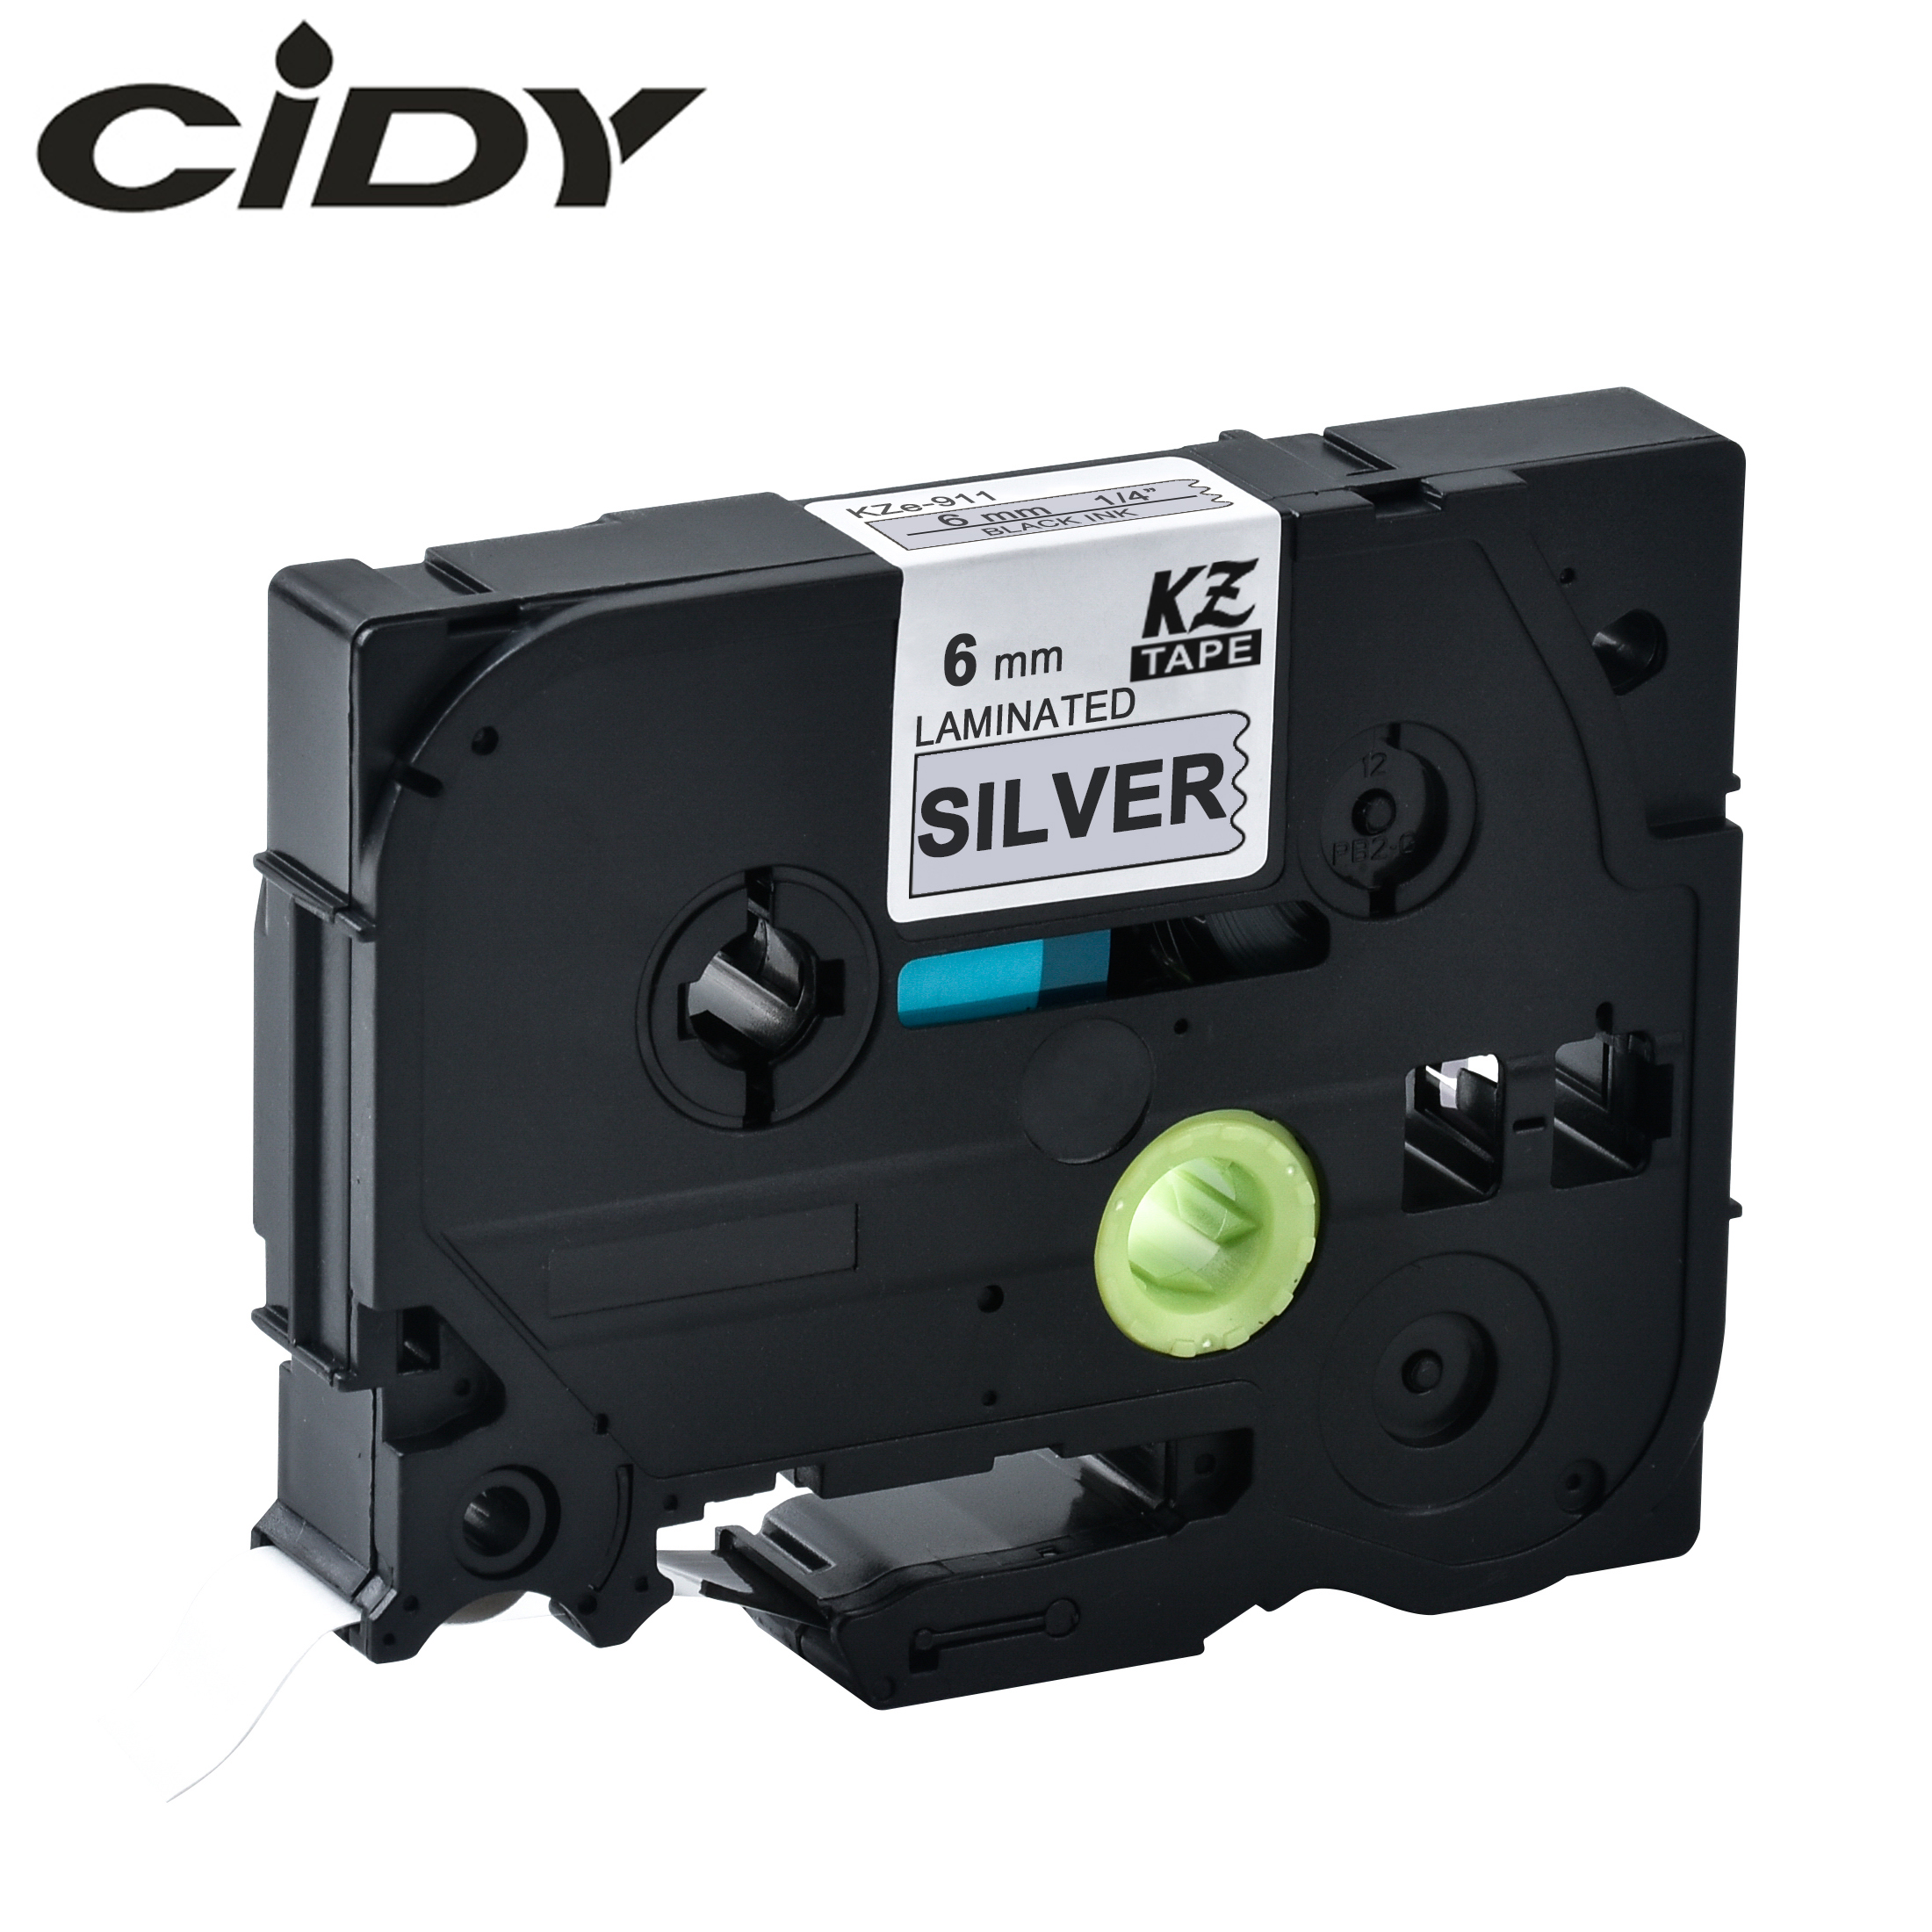 CIDY Tze 911 Tz911 6mm Black On Silver Laminated Compatible P Touch Tze-911 Tz-911 Tze911 Tze Label Tape Cassette Cartridge